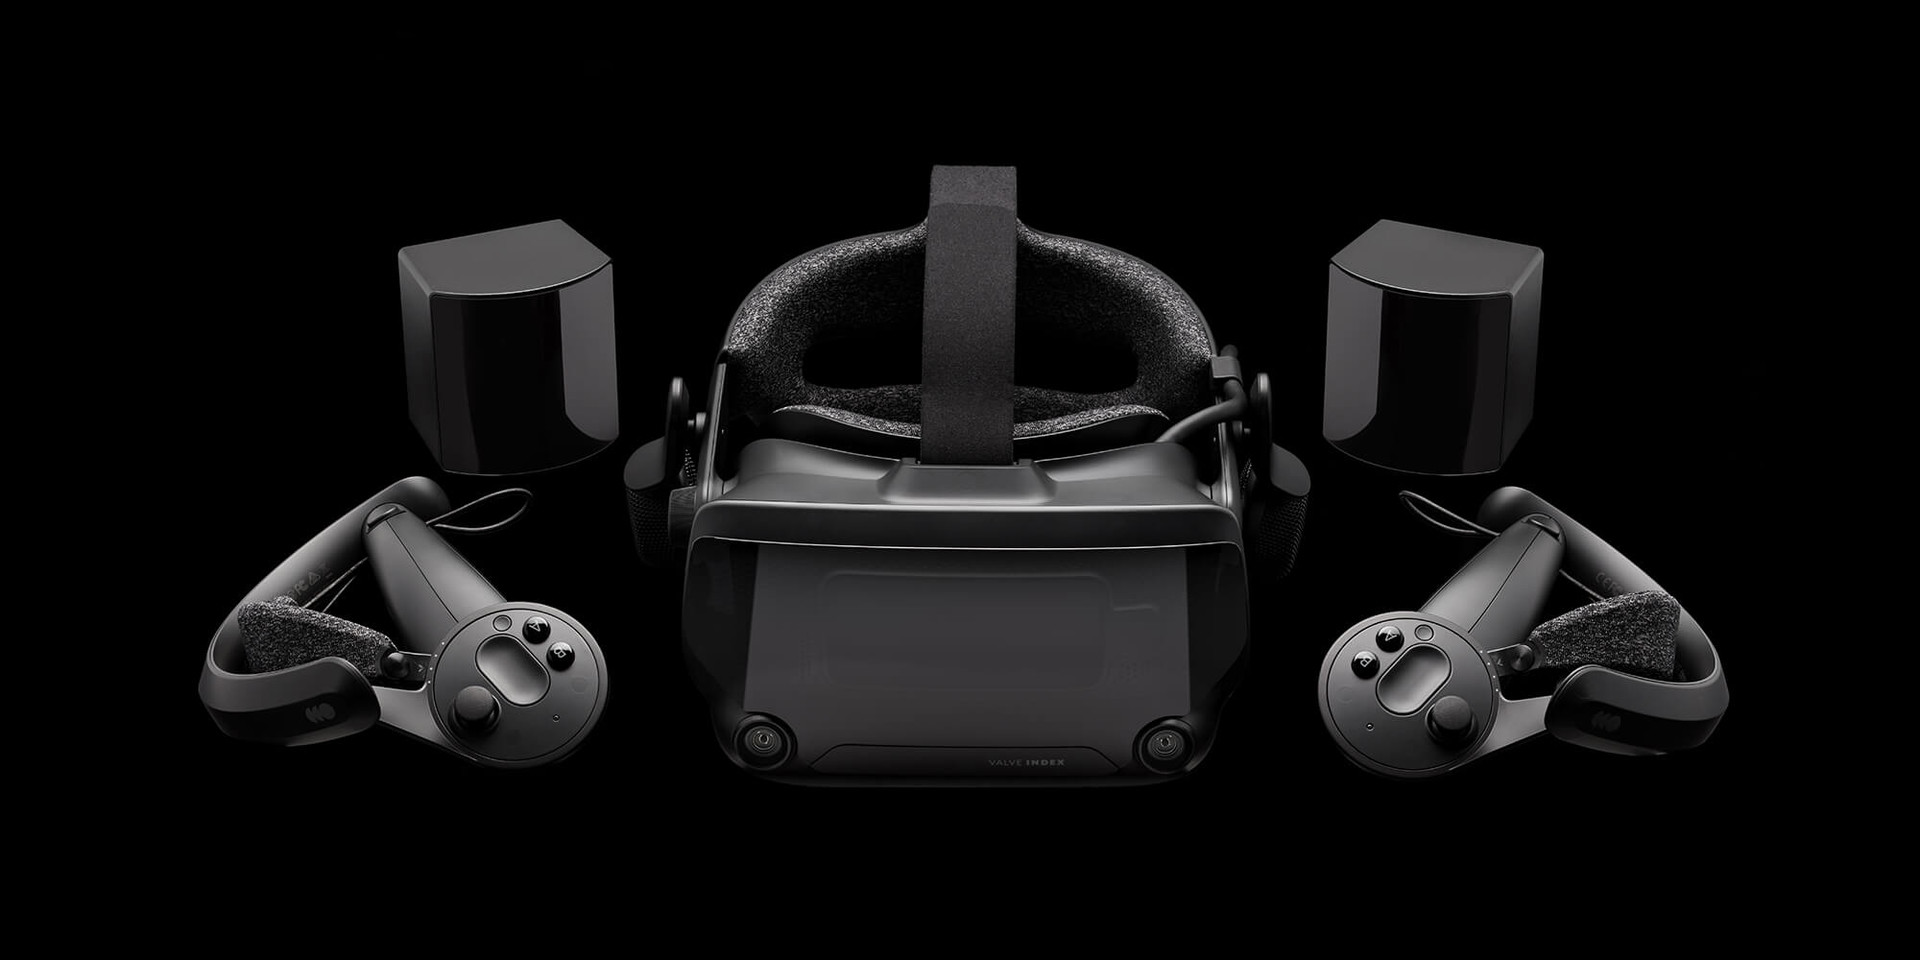 Valve Officially Launches the Valve Index VR HMD, Full Kit Preorder